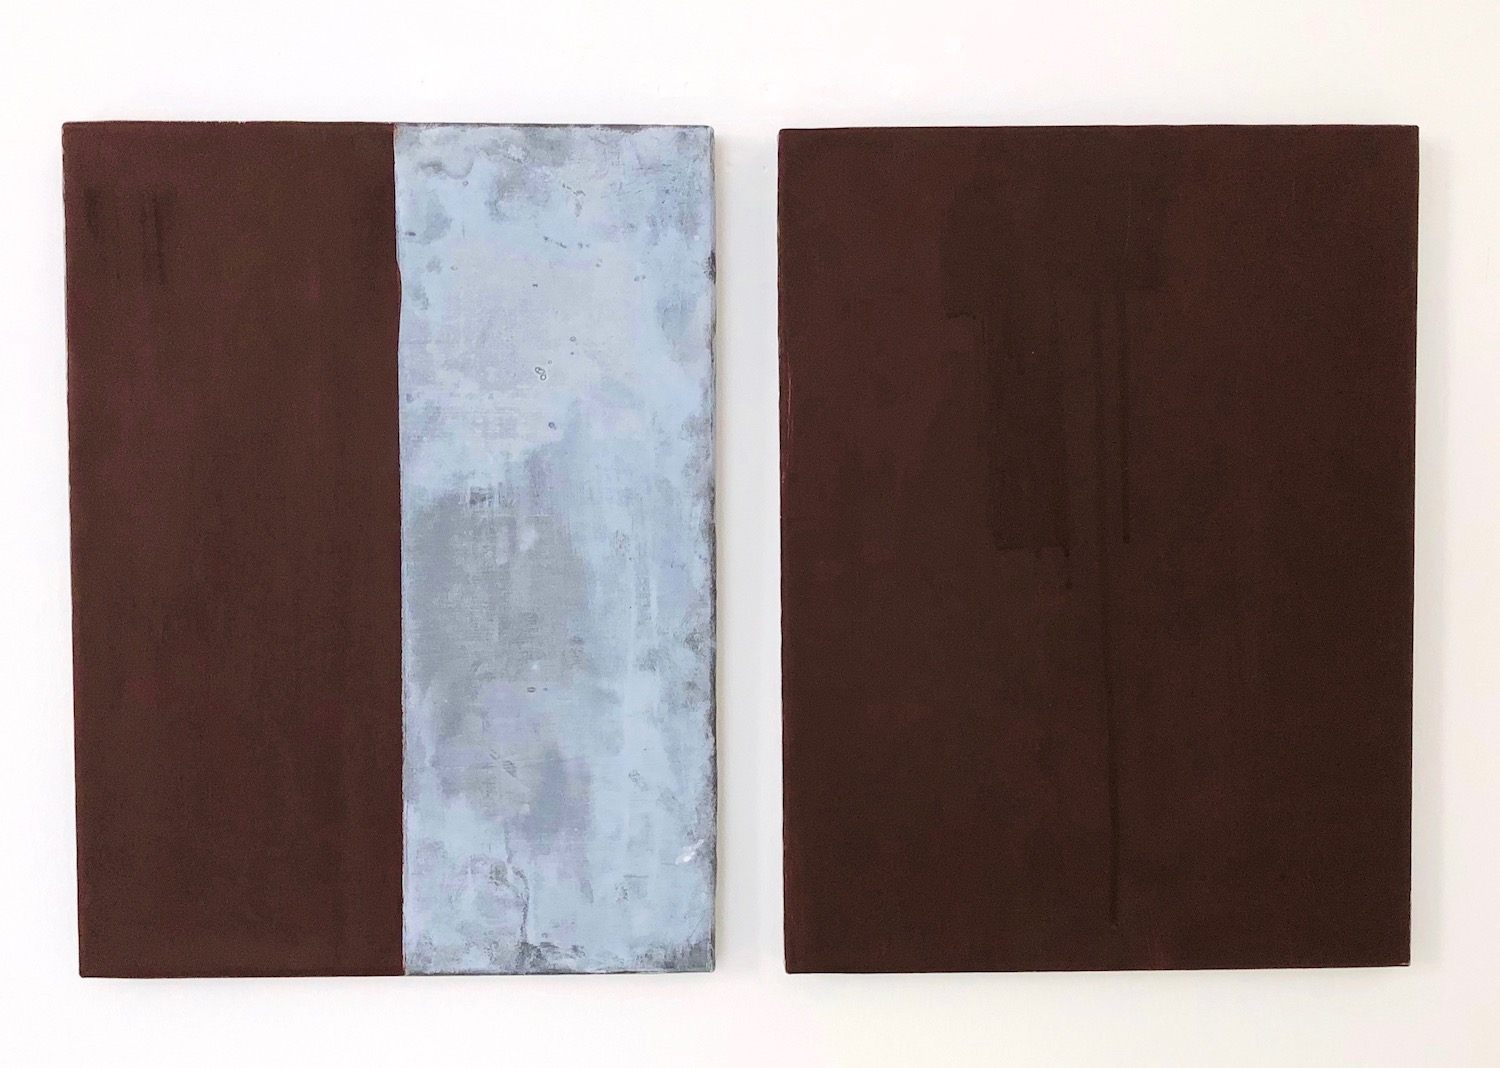 Günther Förg untitled, 1999 acrylic auf lead on wood ech 40 x 30 cm | 15 3/4 x 11 3/4 in each number 8 from 10 unique pieces. GF/M 9